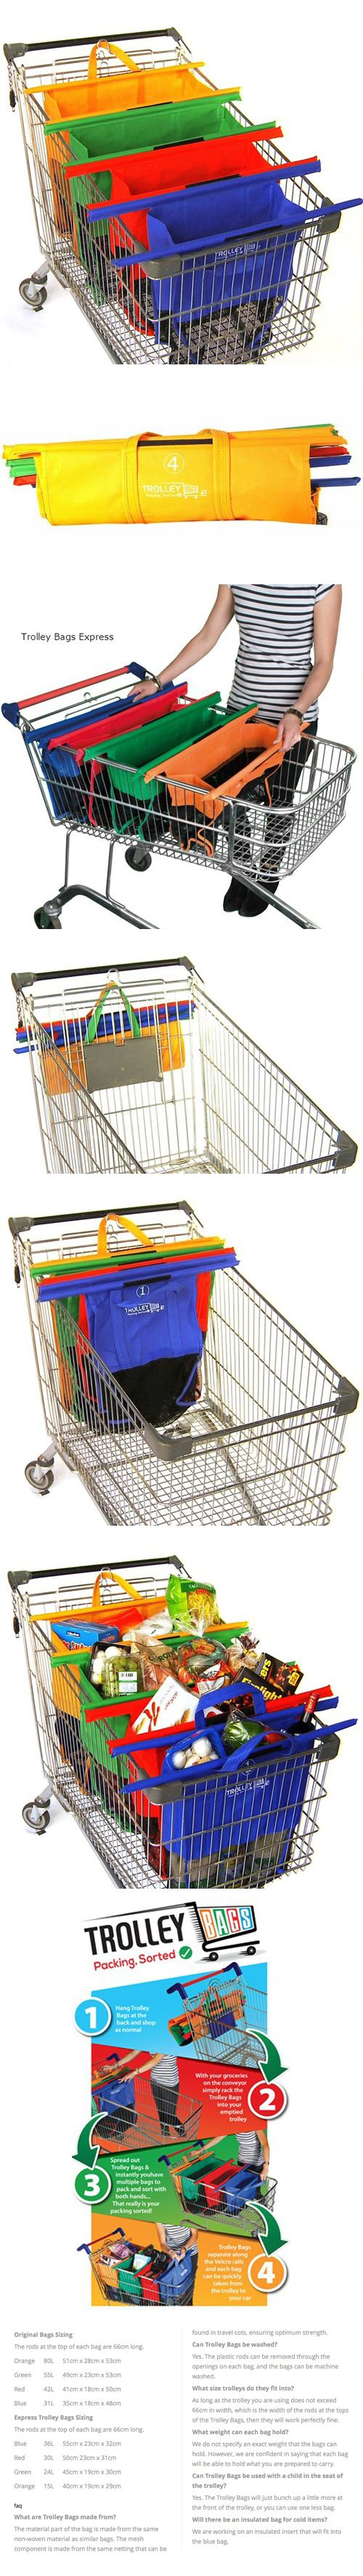 Instyle - Trolley Bags